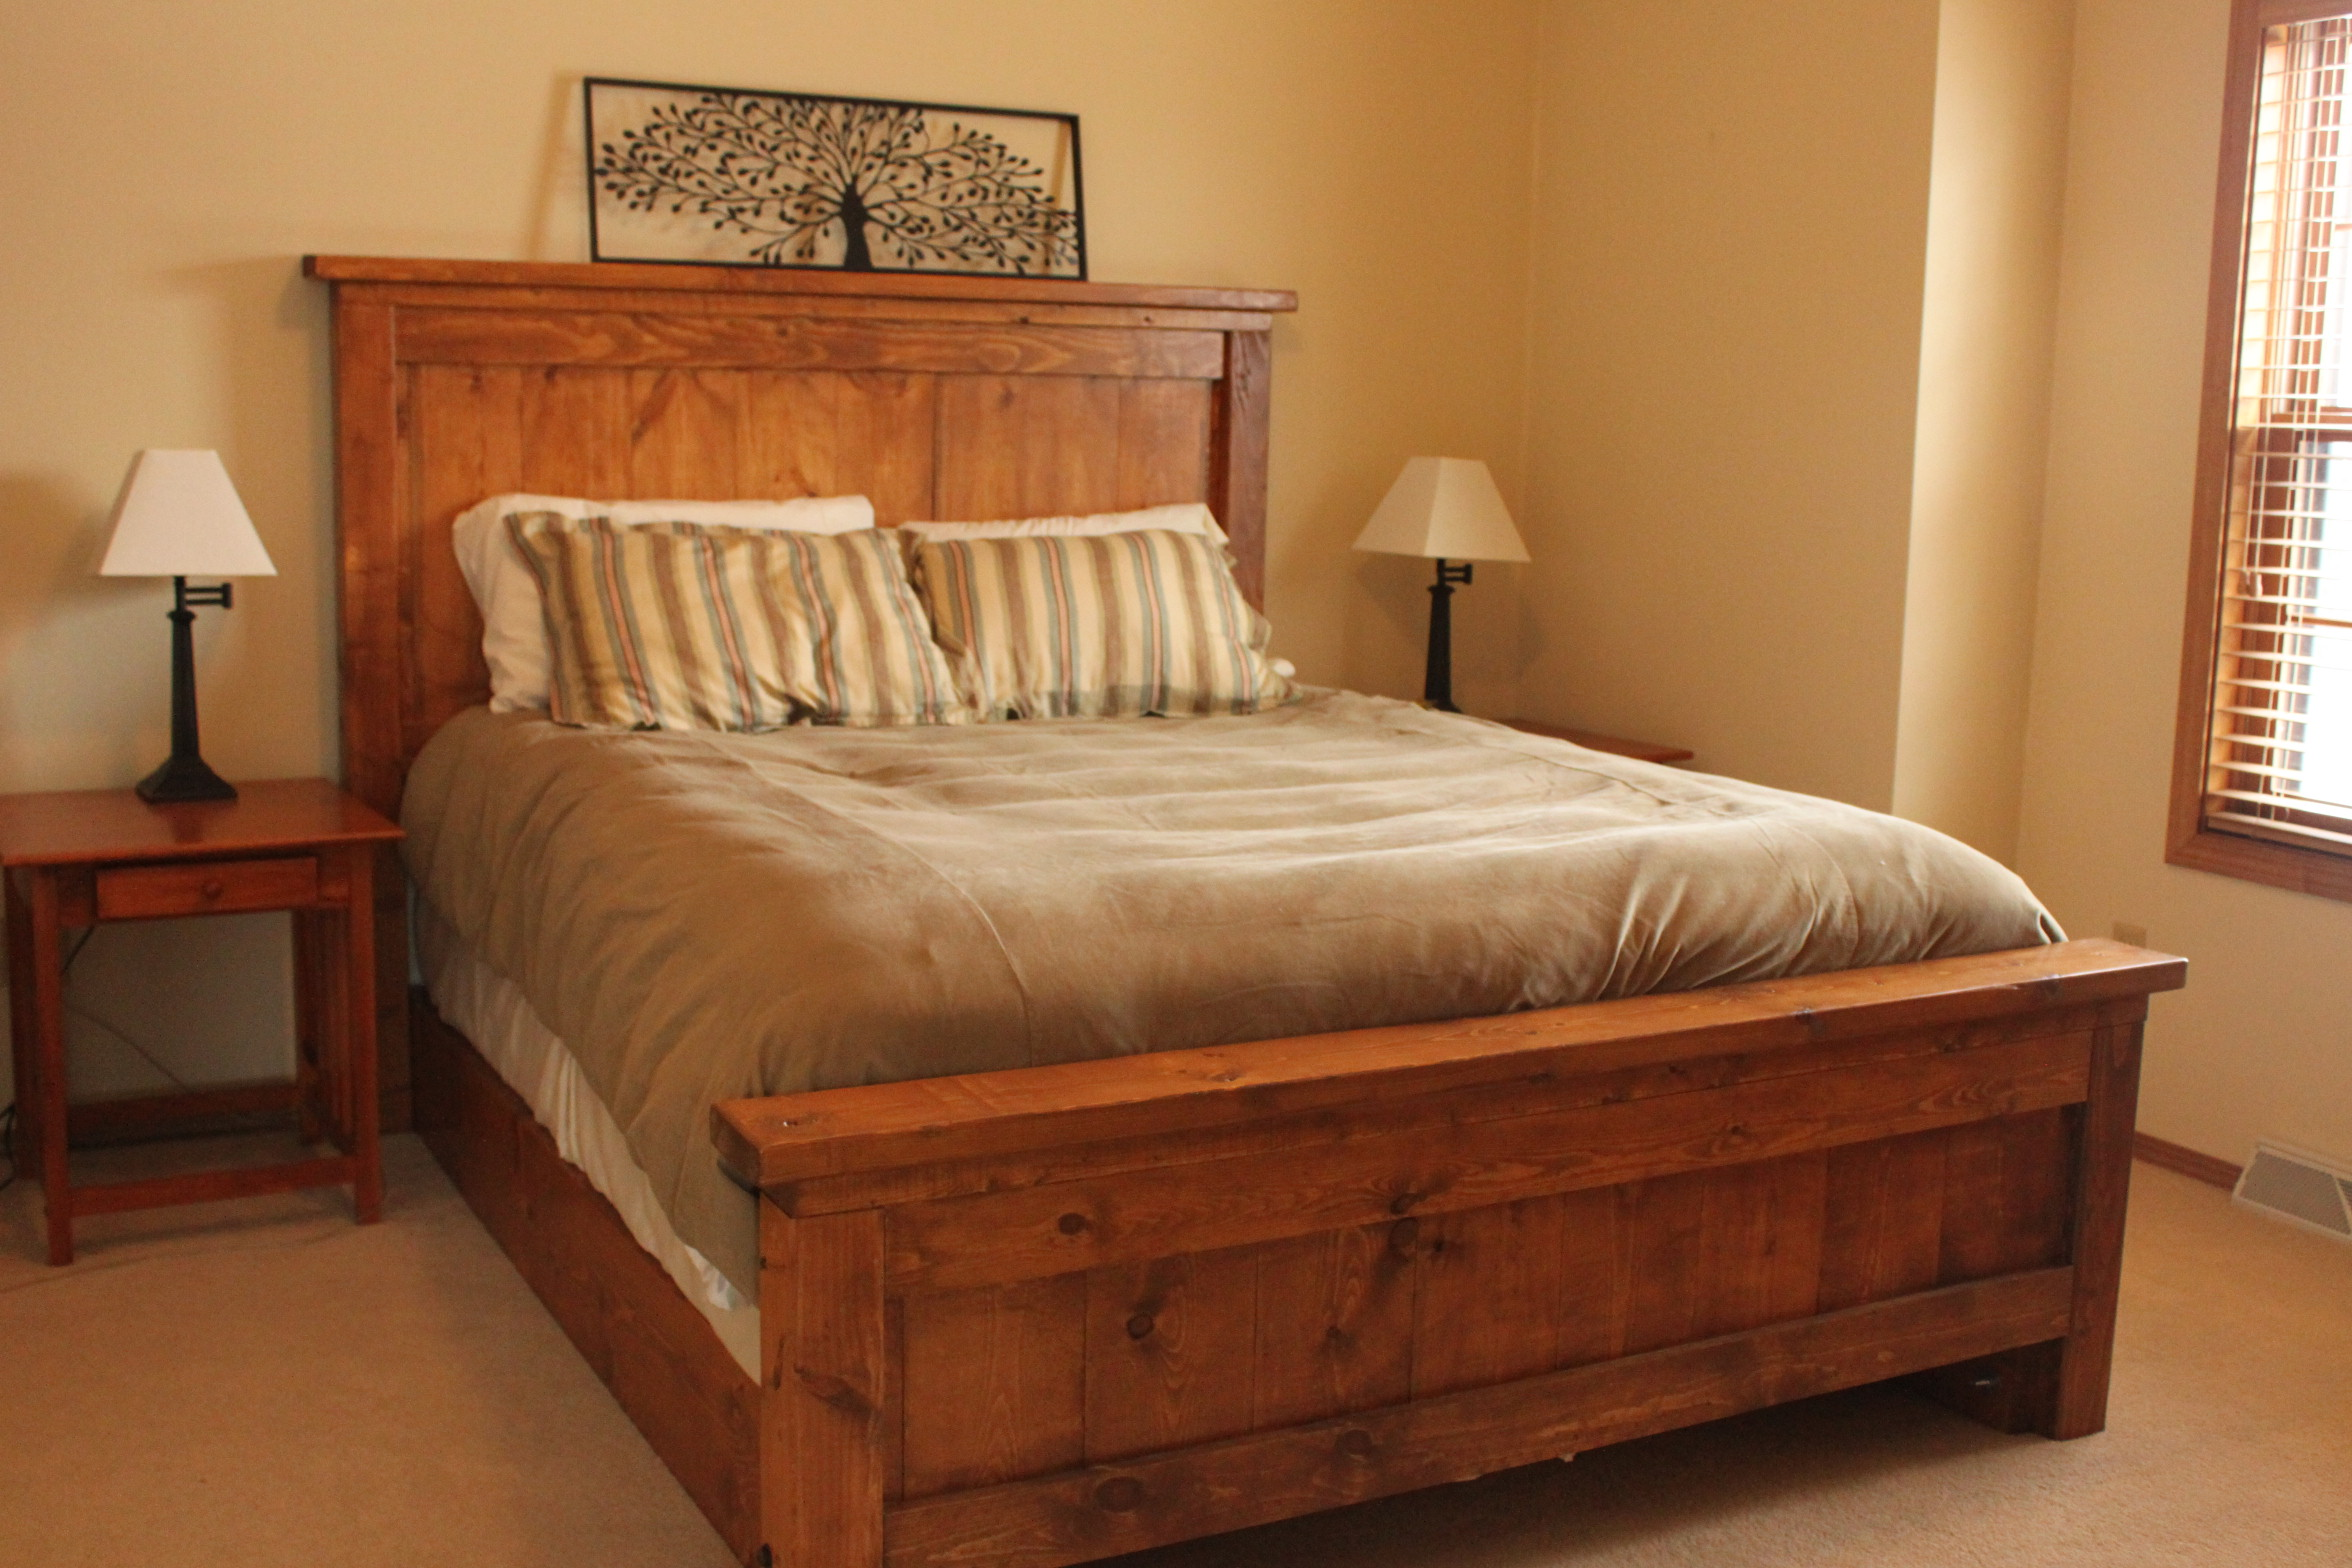 Ana White Our Farmhouse Bed DIY Projects